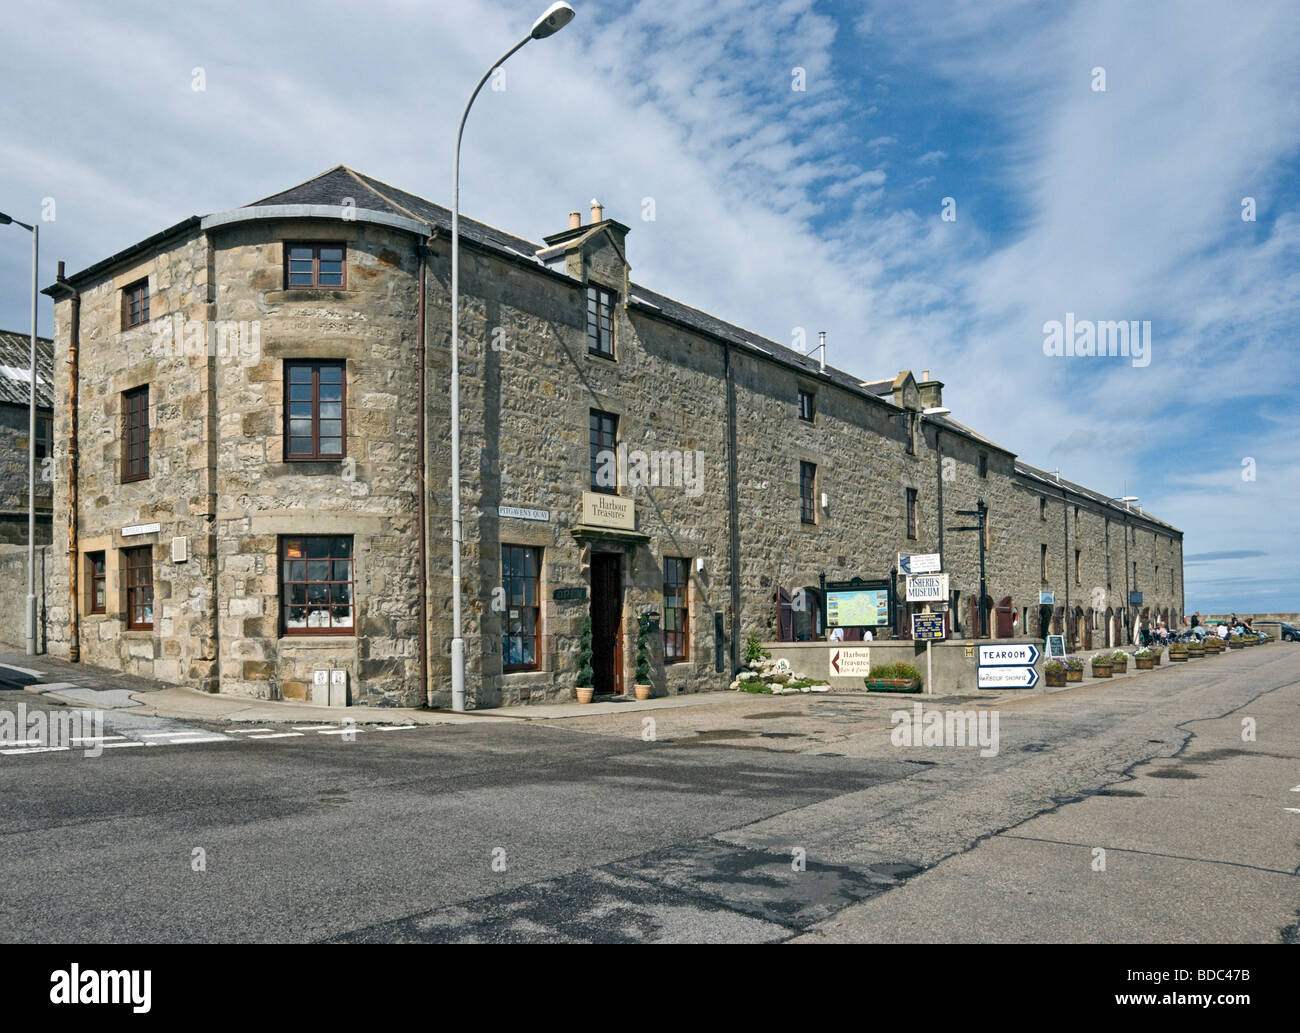 Shops and restaurant in restored building Lossiemouth Harbour Moray Scotland - Stock Image